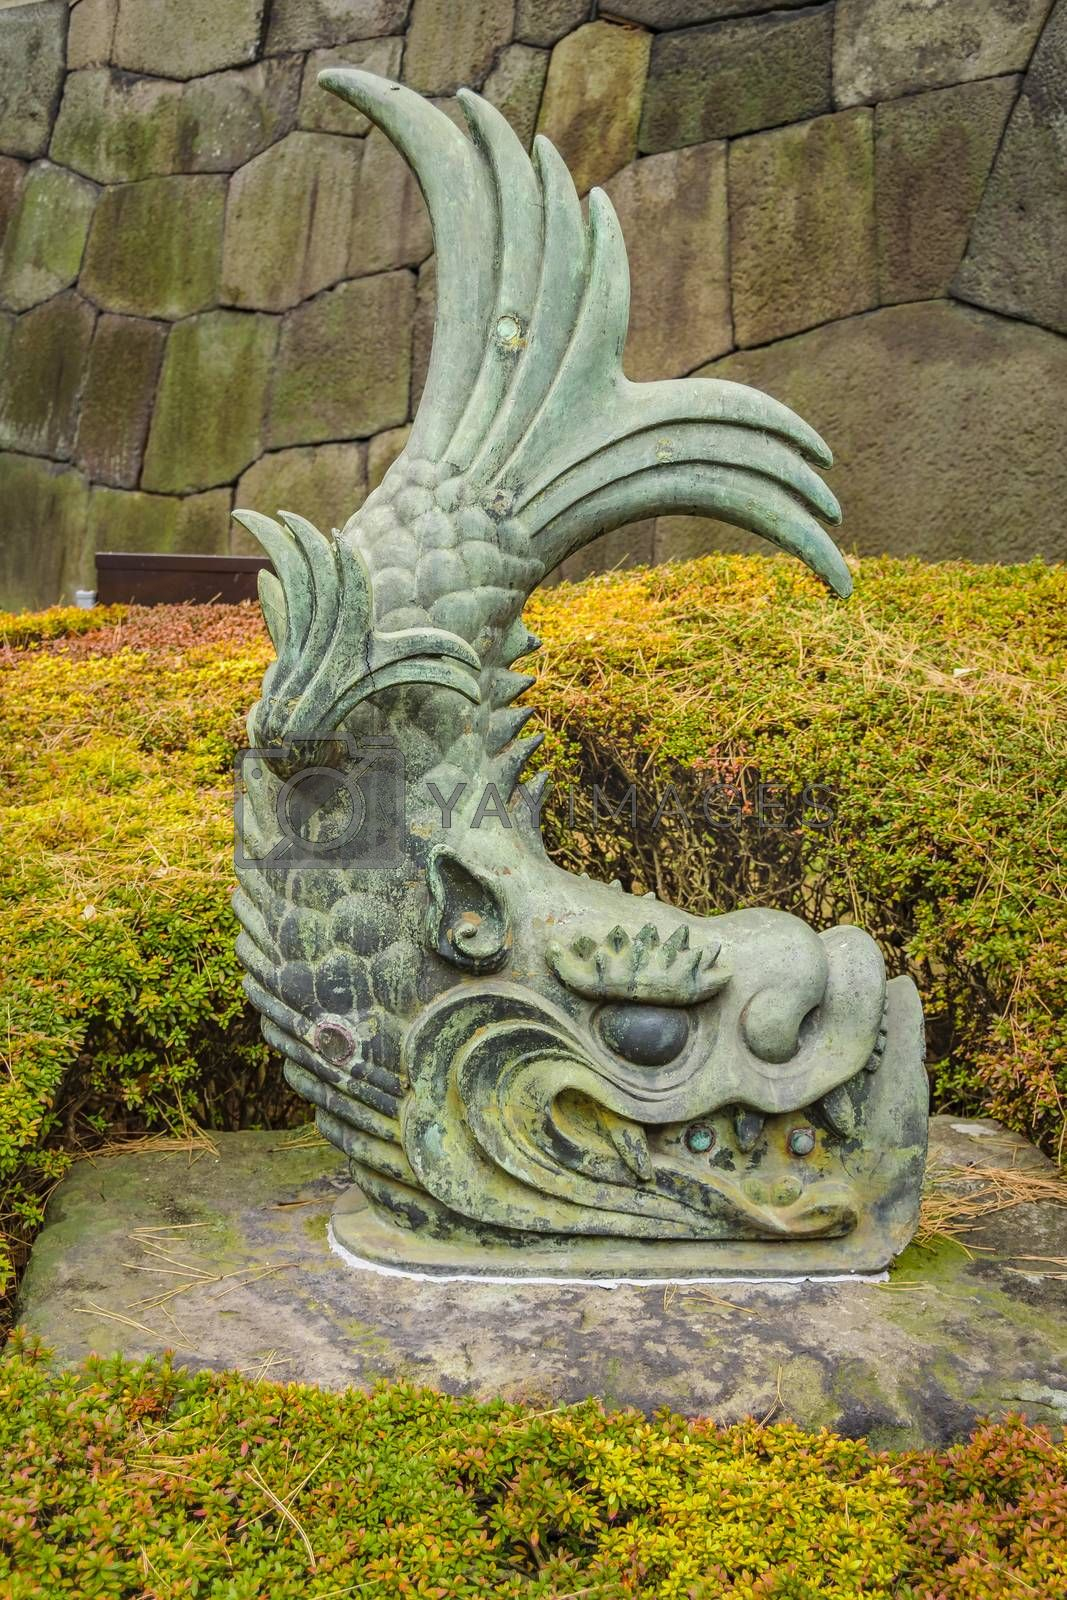 Japanese mythological fish stone sculpture, imperial palace, tokyo, japan